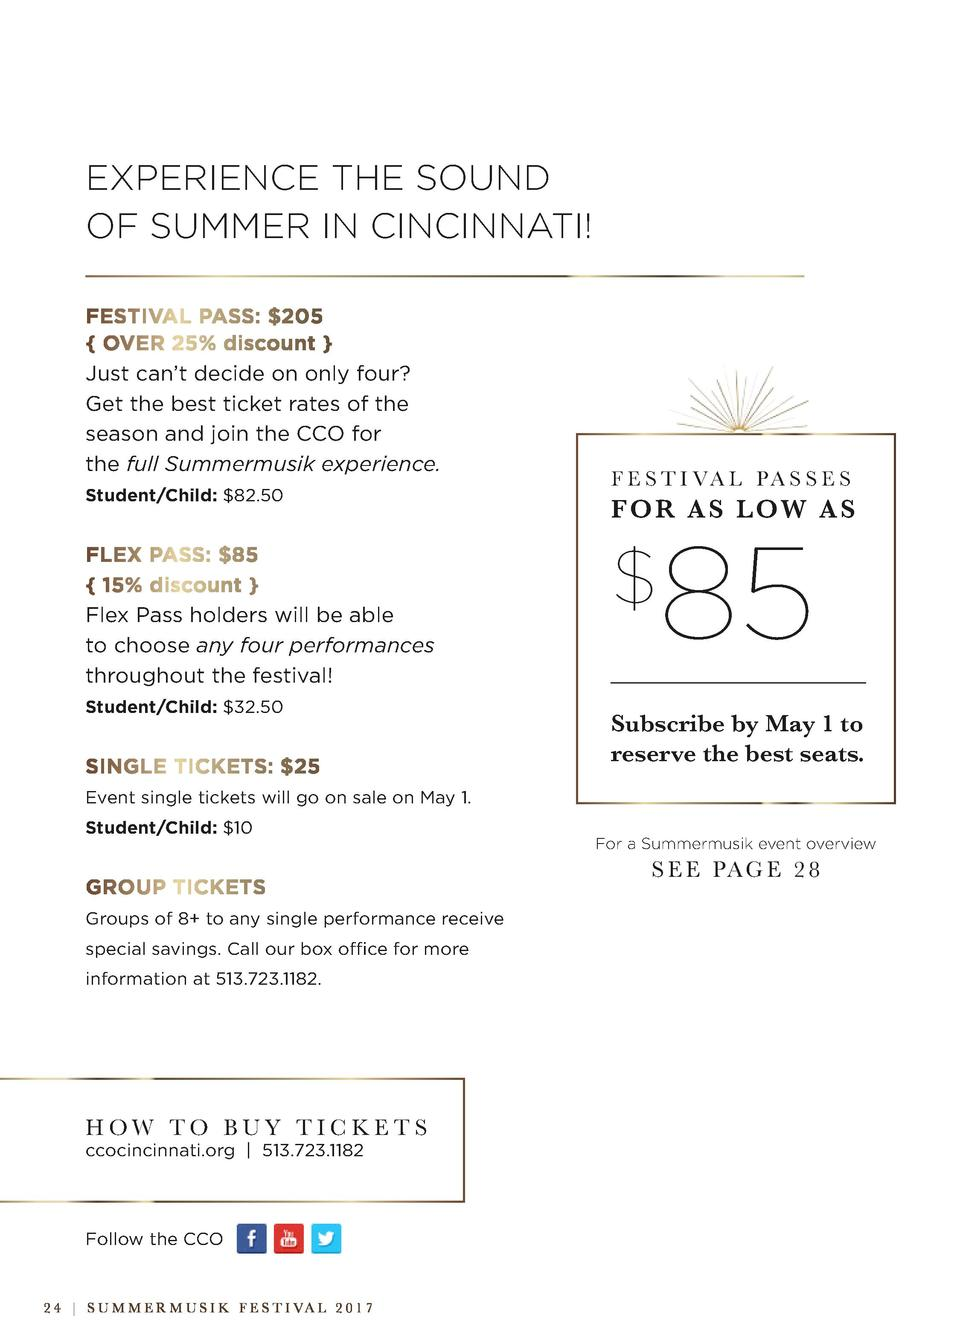 EXPERIENCE THE SOUND OF SUMMER IN CINCINNATI  FESTIVAL PASS   205   OVER 25  discount   Just can   t decide on only four  ...